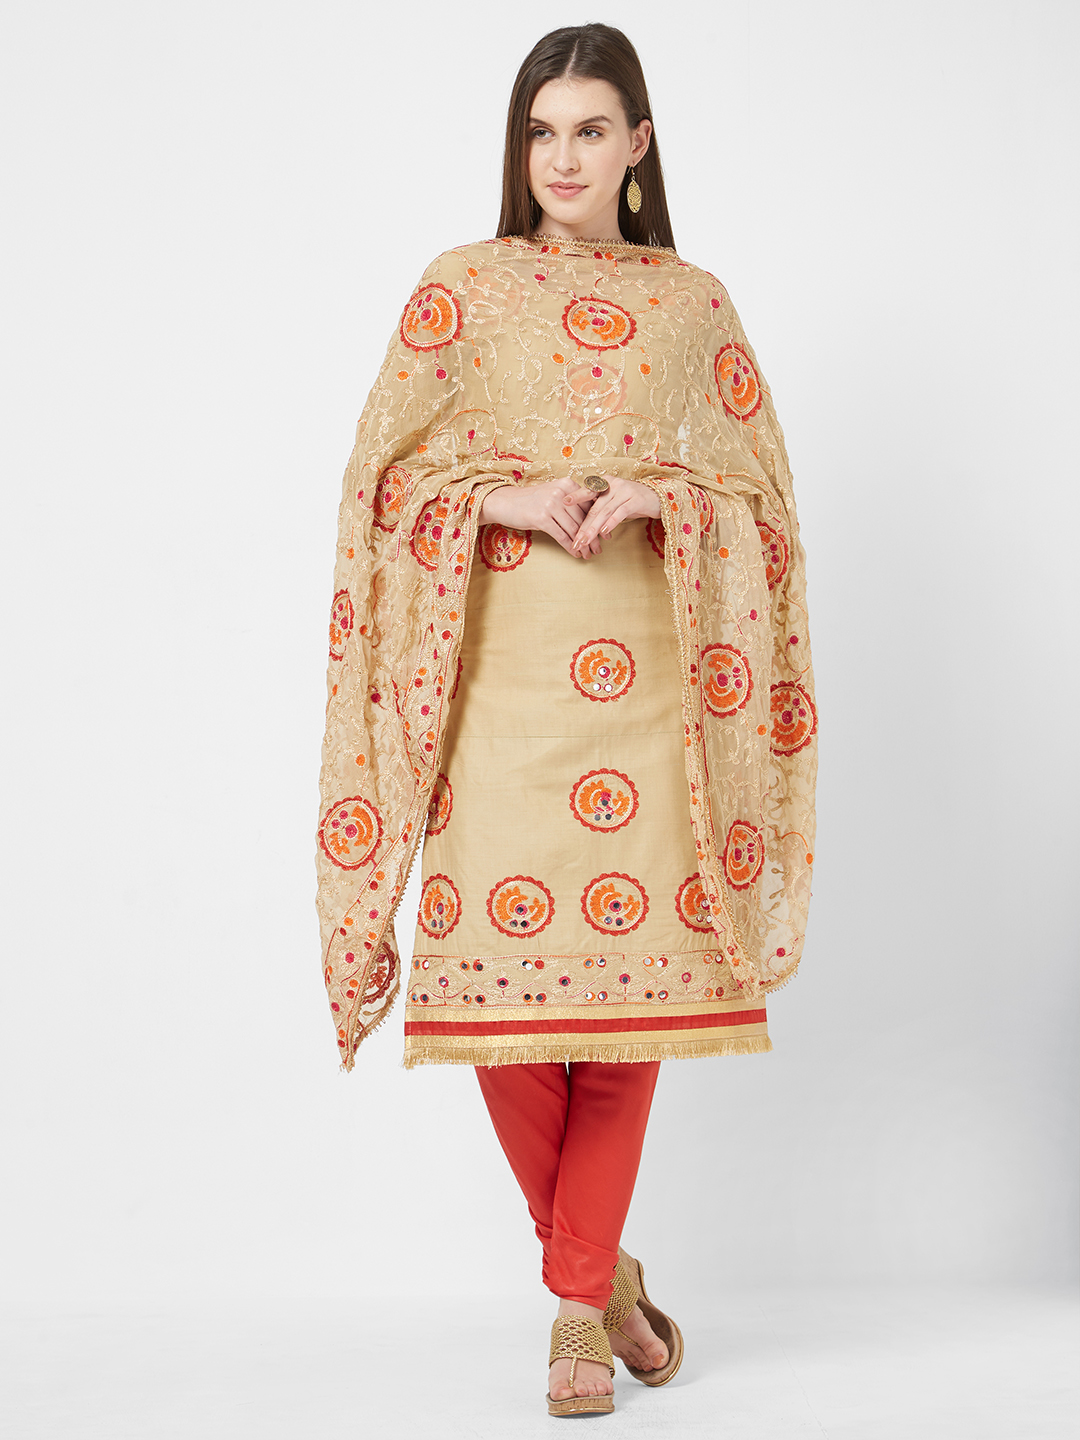 Viva N Diva Cream Embroidered Casual Cotton Salwar Kameez